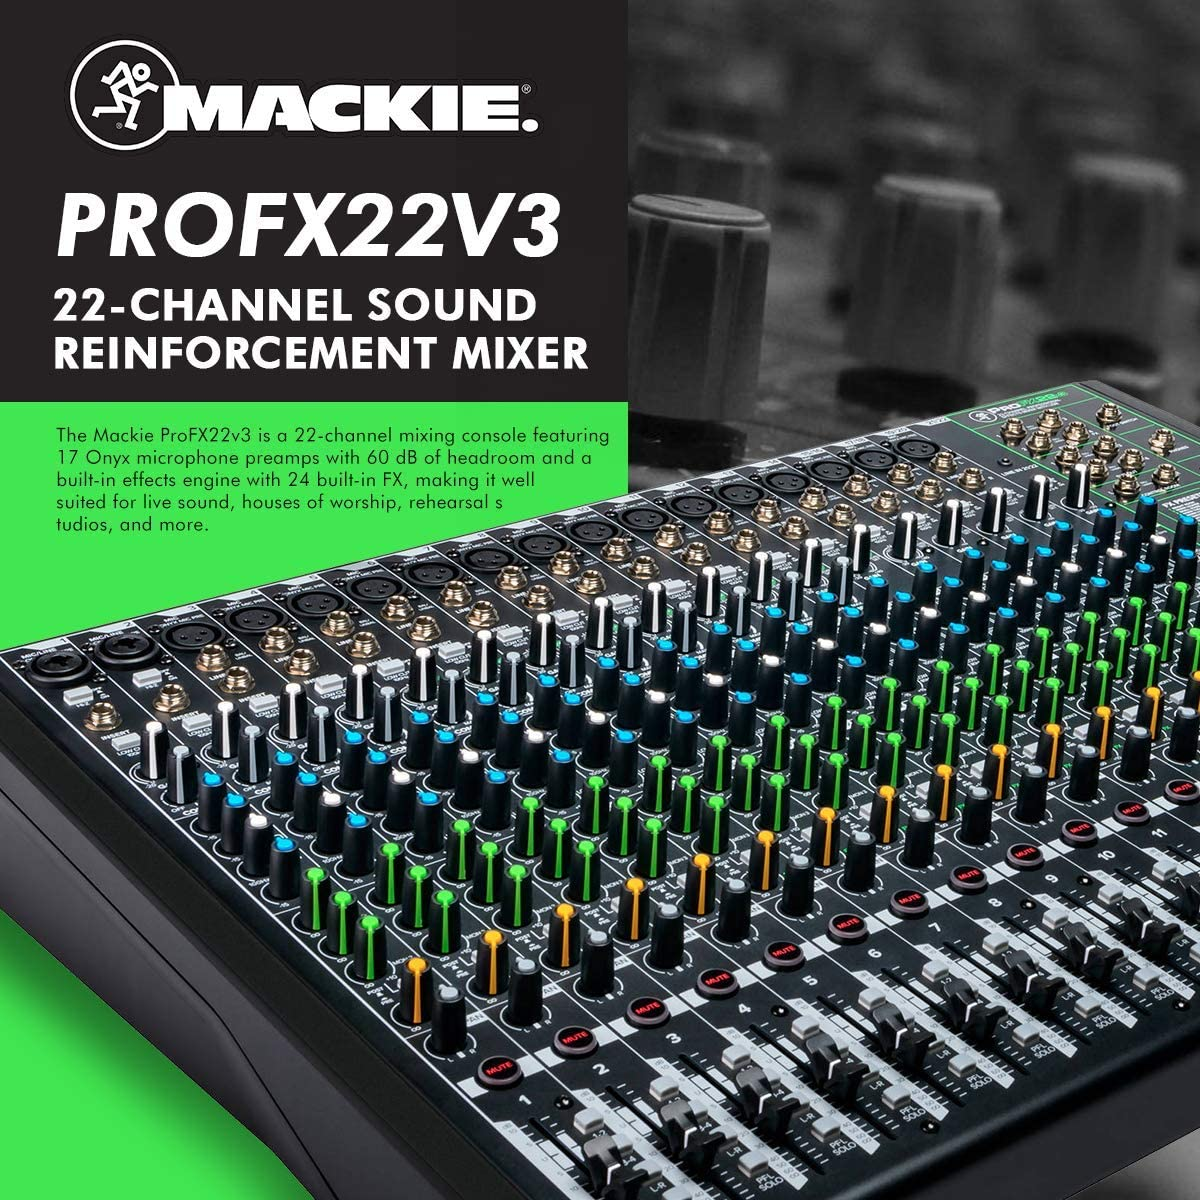 Mackie ProFX12v3 12-Channel Sound Reinforcement Mixer with Built-In FX Q7x Dynamic Supercardioid Handheld Microphone Xpix Pop Screen Filter Xpix 6 Mic Stand /& Professional Cable Accessories